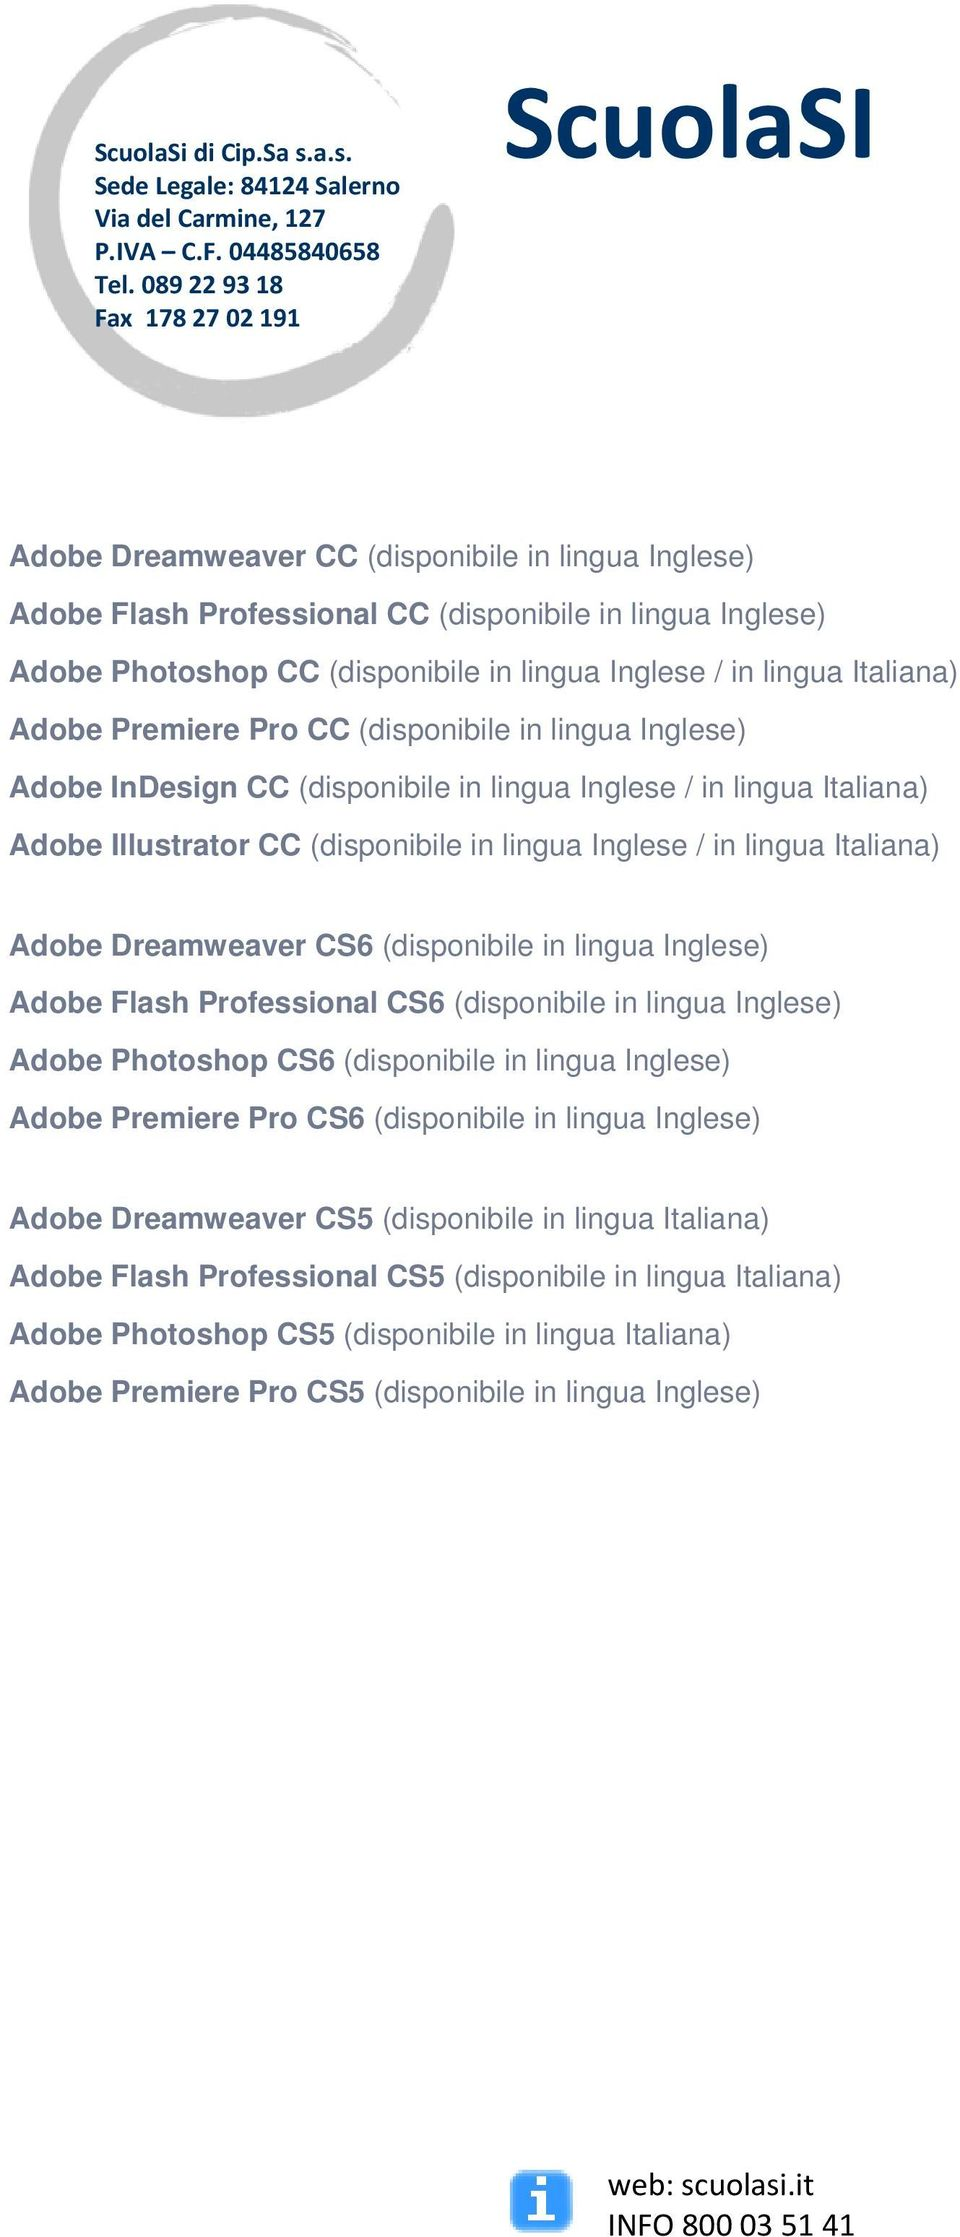 Dreamweaver CS6 (disponibile in lingua Inglese) Adobe Flash Professional CS6 (disponibile in lingua Inglese) Adobe Photoshop CS6 (disponibile in lingua Inglese) Adobe Premiere Pro CS6 (disponibile in